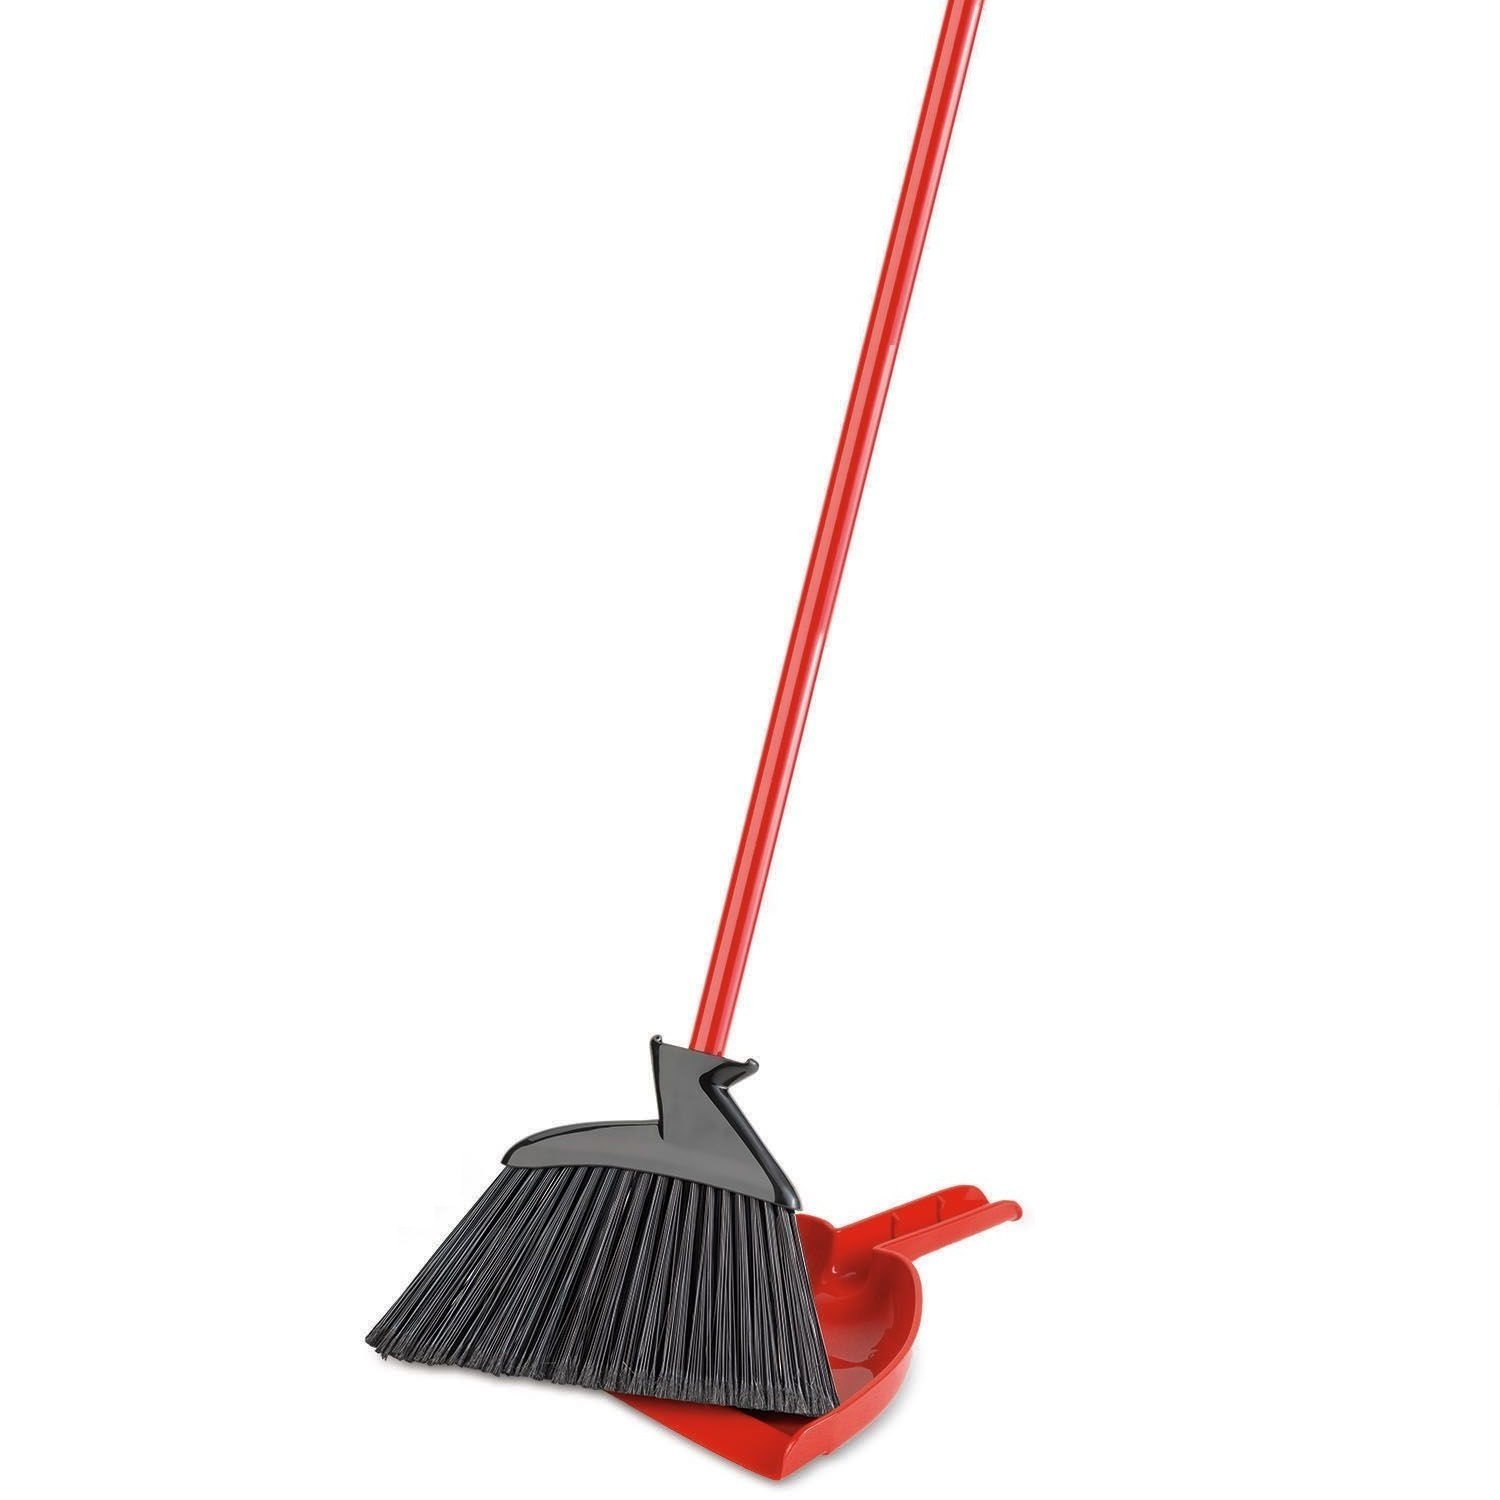 Libman Precision Angle Broom with Dustpan Dustpan, Dustpan Snaps On Broom Handles For Easy Storage... H&PC-80354